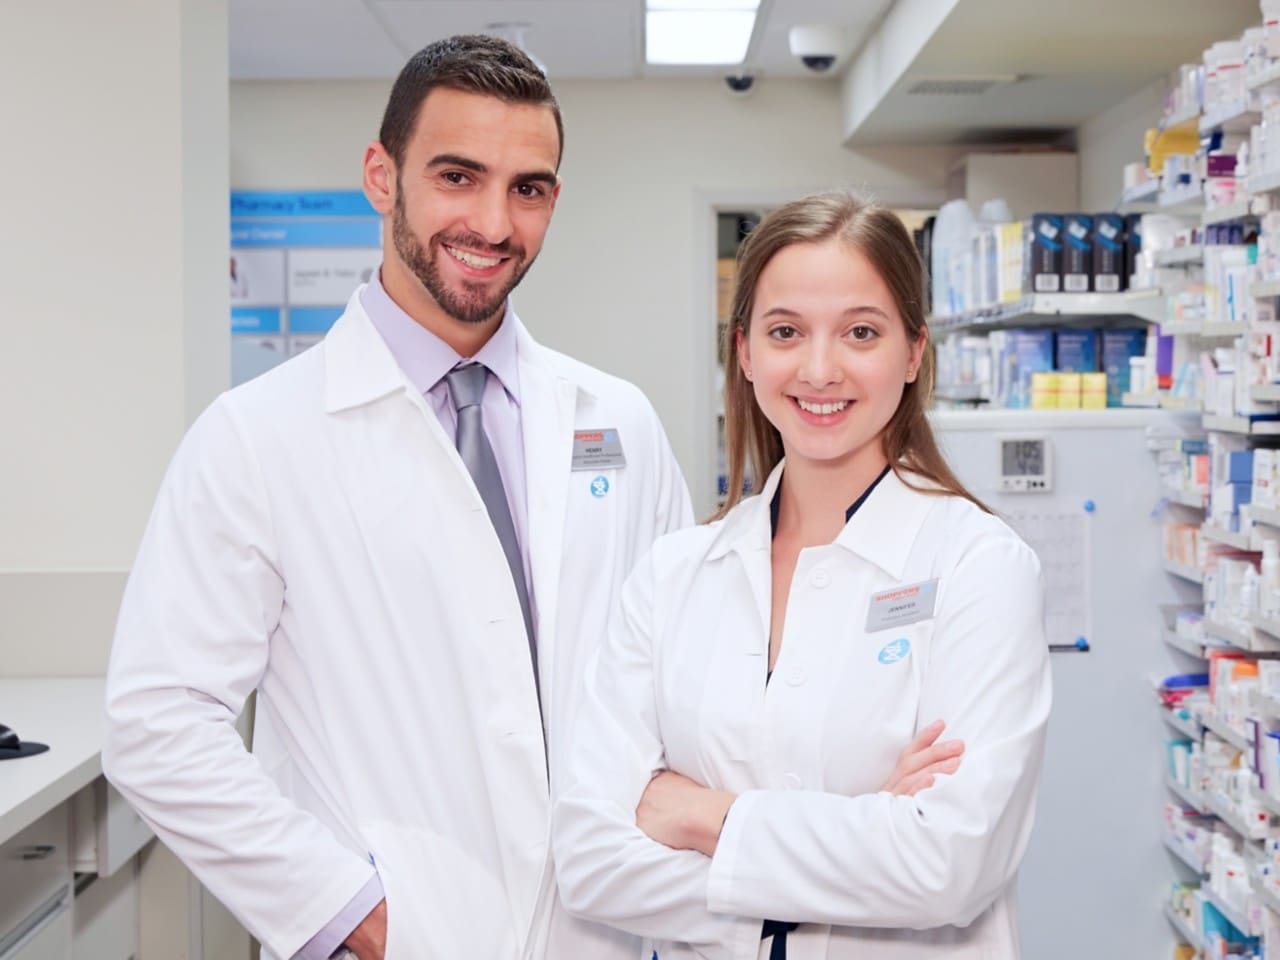 2 people in pharmacy jackets smiling